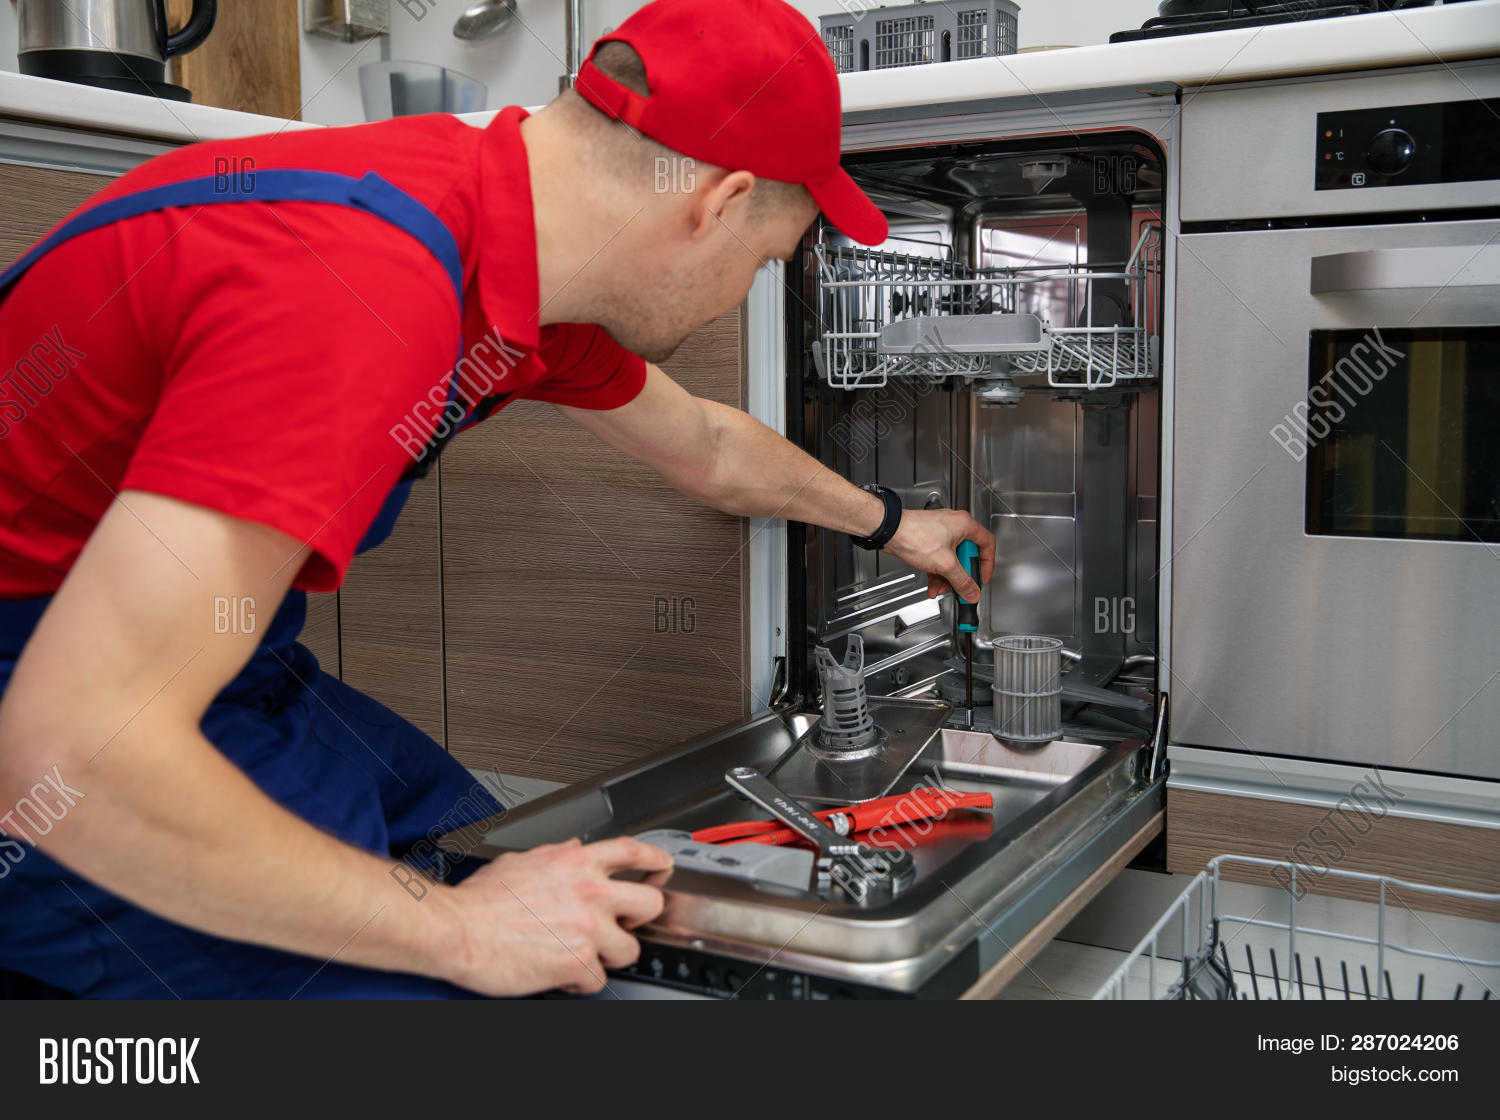 adult,appliance,caucasian,dishwasher,domestic,fix,fixing,handyman,holding,home,house,kitchen,maintenance,male,man,open,overall,people,person,profession,red,repair,repairing,repairman,screwdriver,service,serviceman,technician,uniform,work,worker